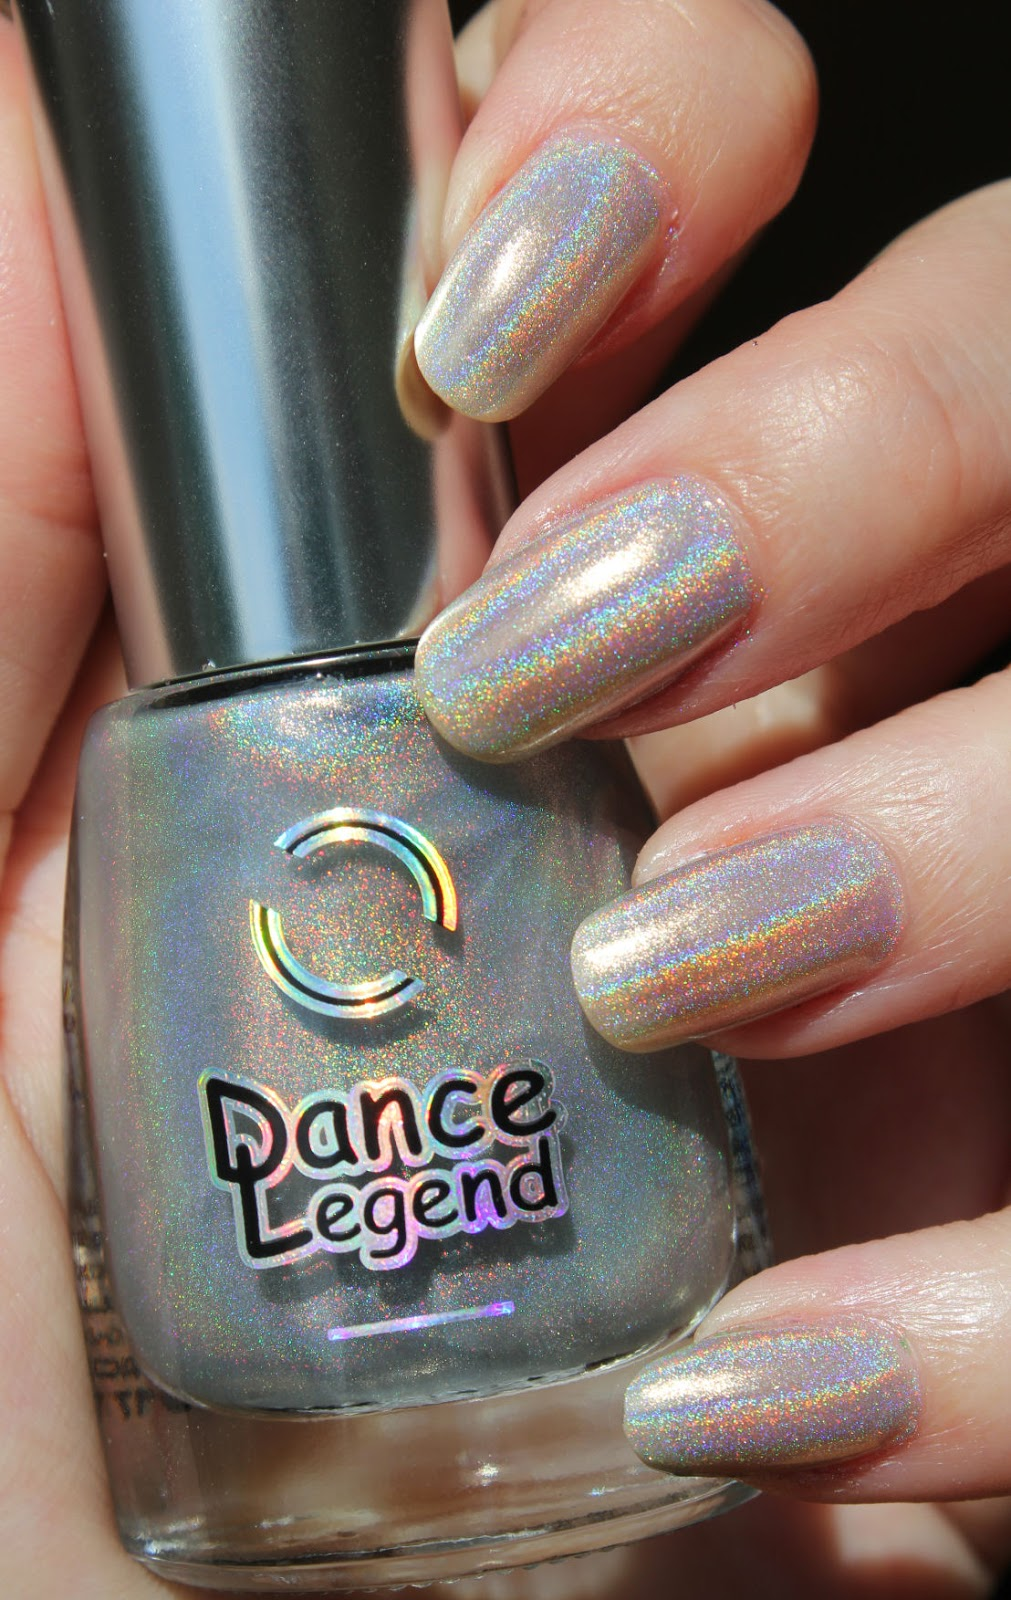 http://lacquediction.blogspot.de/2014/11/dance-legend-top-prismatic-dupetest.html